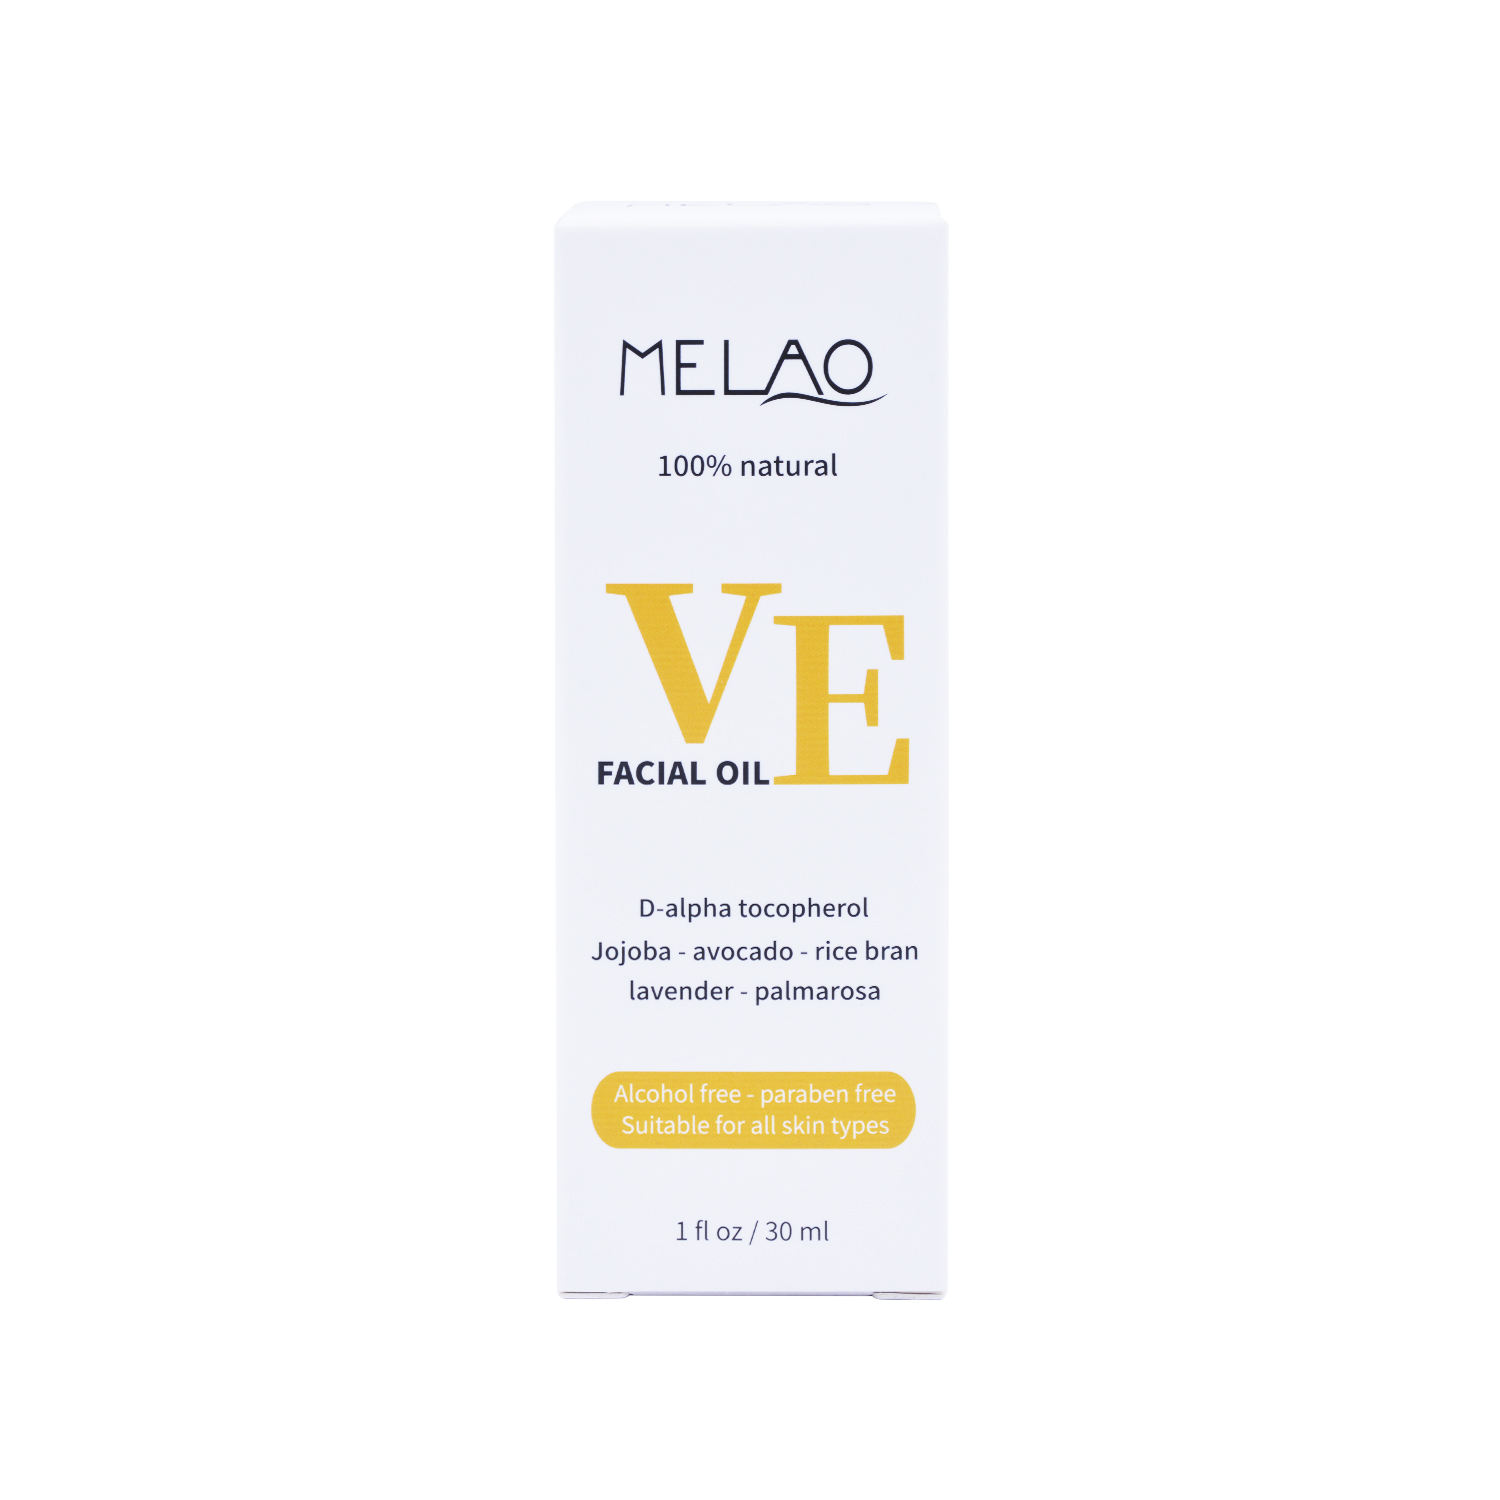 melao skin care vitamin E facial oil vitamin e facial oil